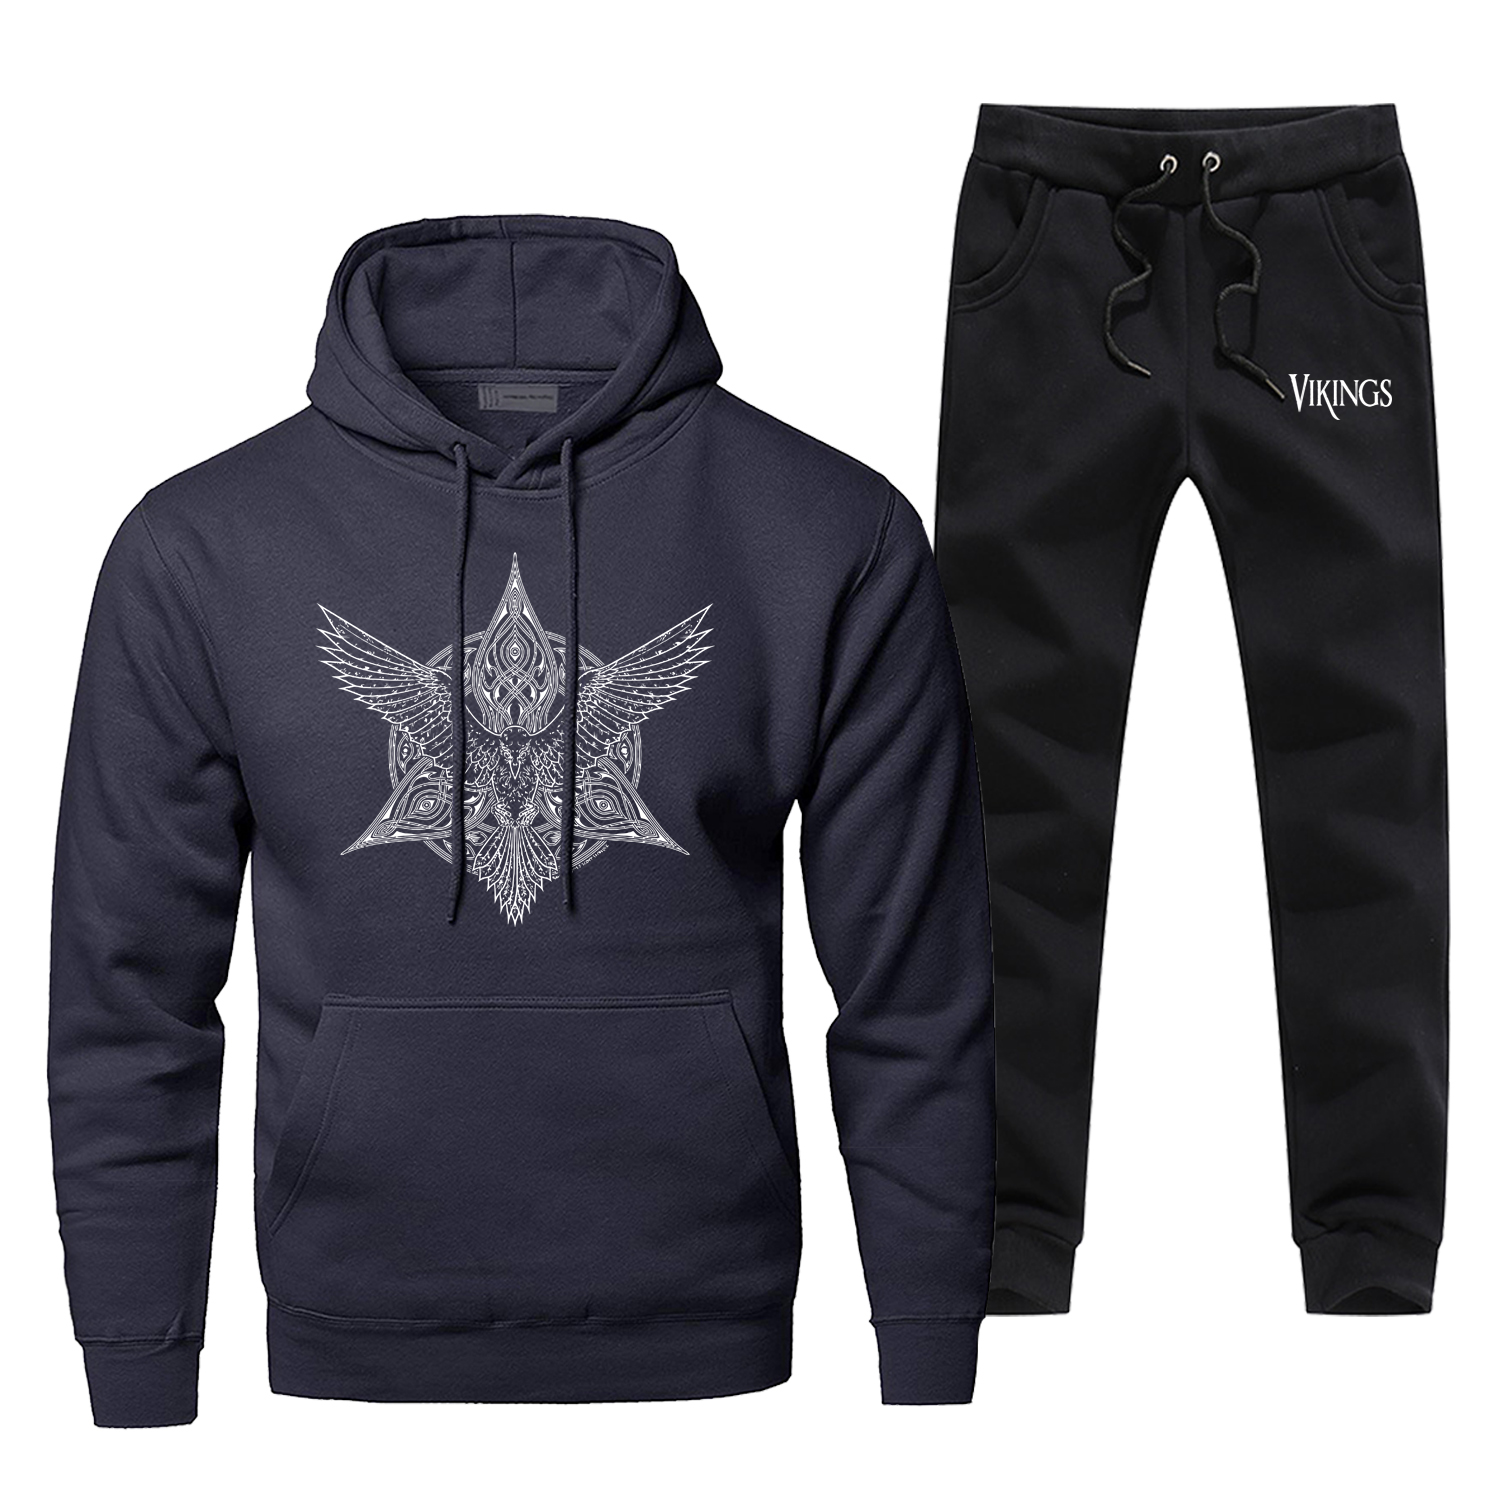 Fashion TV Show The Viking Men Hoodies+pants Two Piece Sets Casual Autumn Winter Fleece Warm Vikings Sweatshirts Sportsman Wear